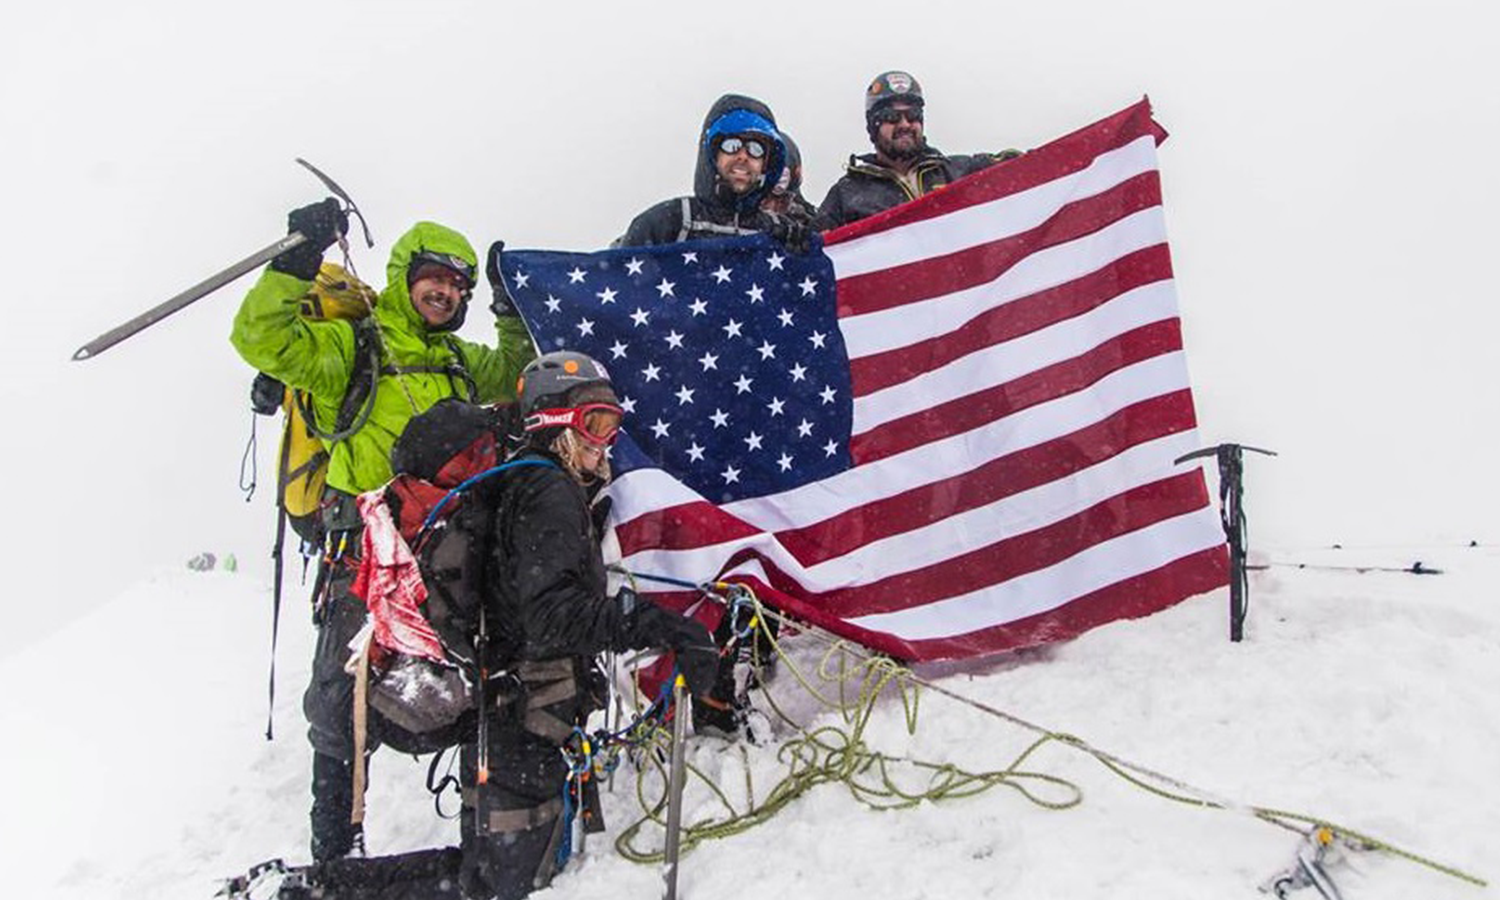 S2S team at the top of the summit. Pedro and teammates proudly hold the American Flag he discusses in his blog.